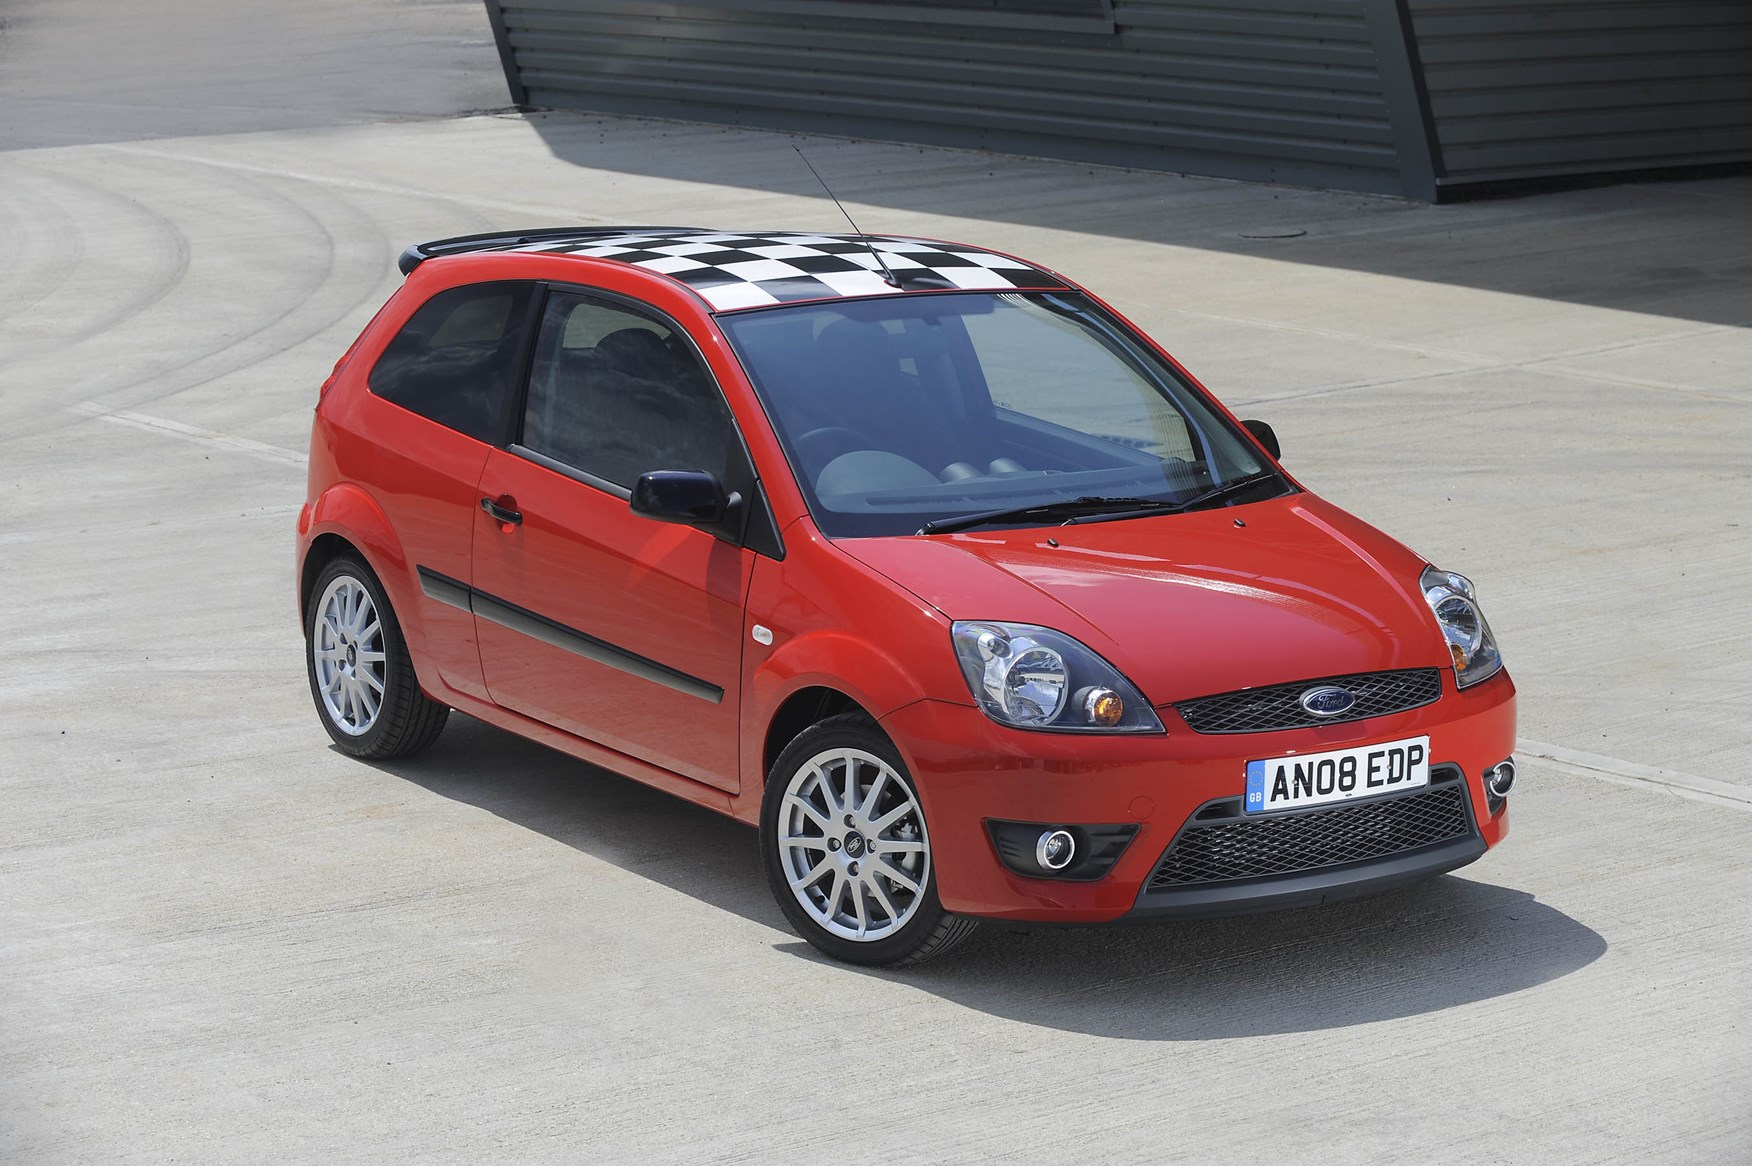 Ford Fiesta Hatchback 2002 2008 Features Equipment And Zetec S Wiring Diagram Accessories Parkers